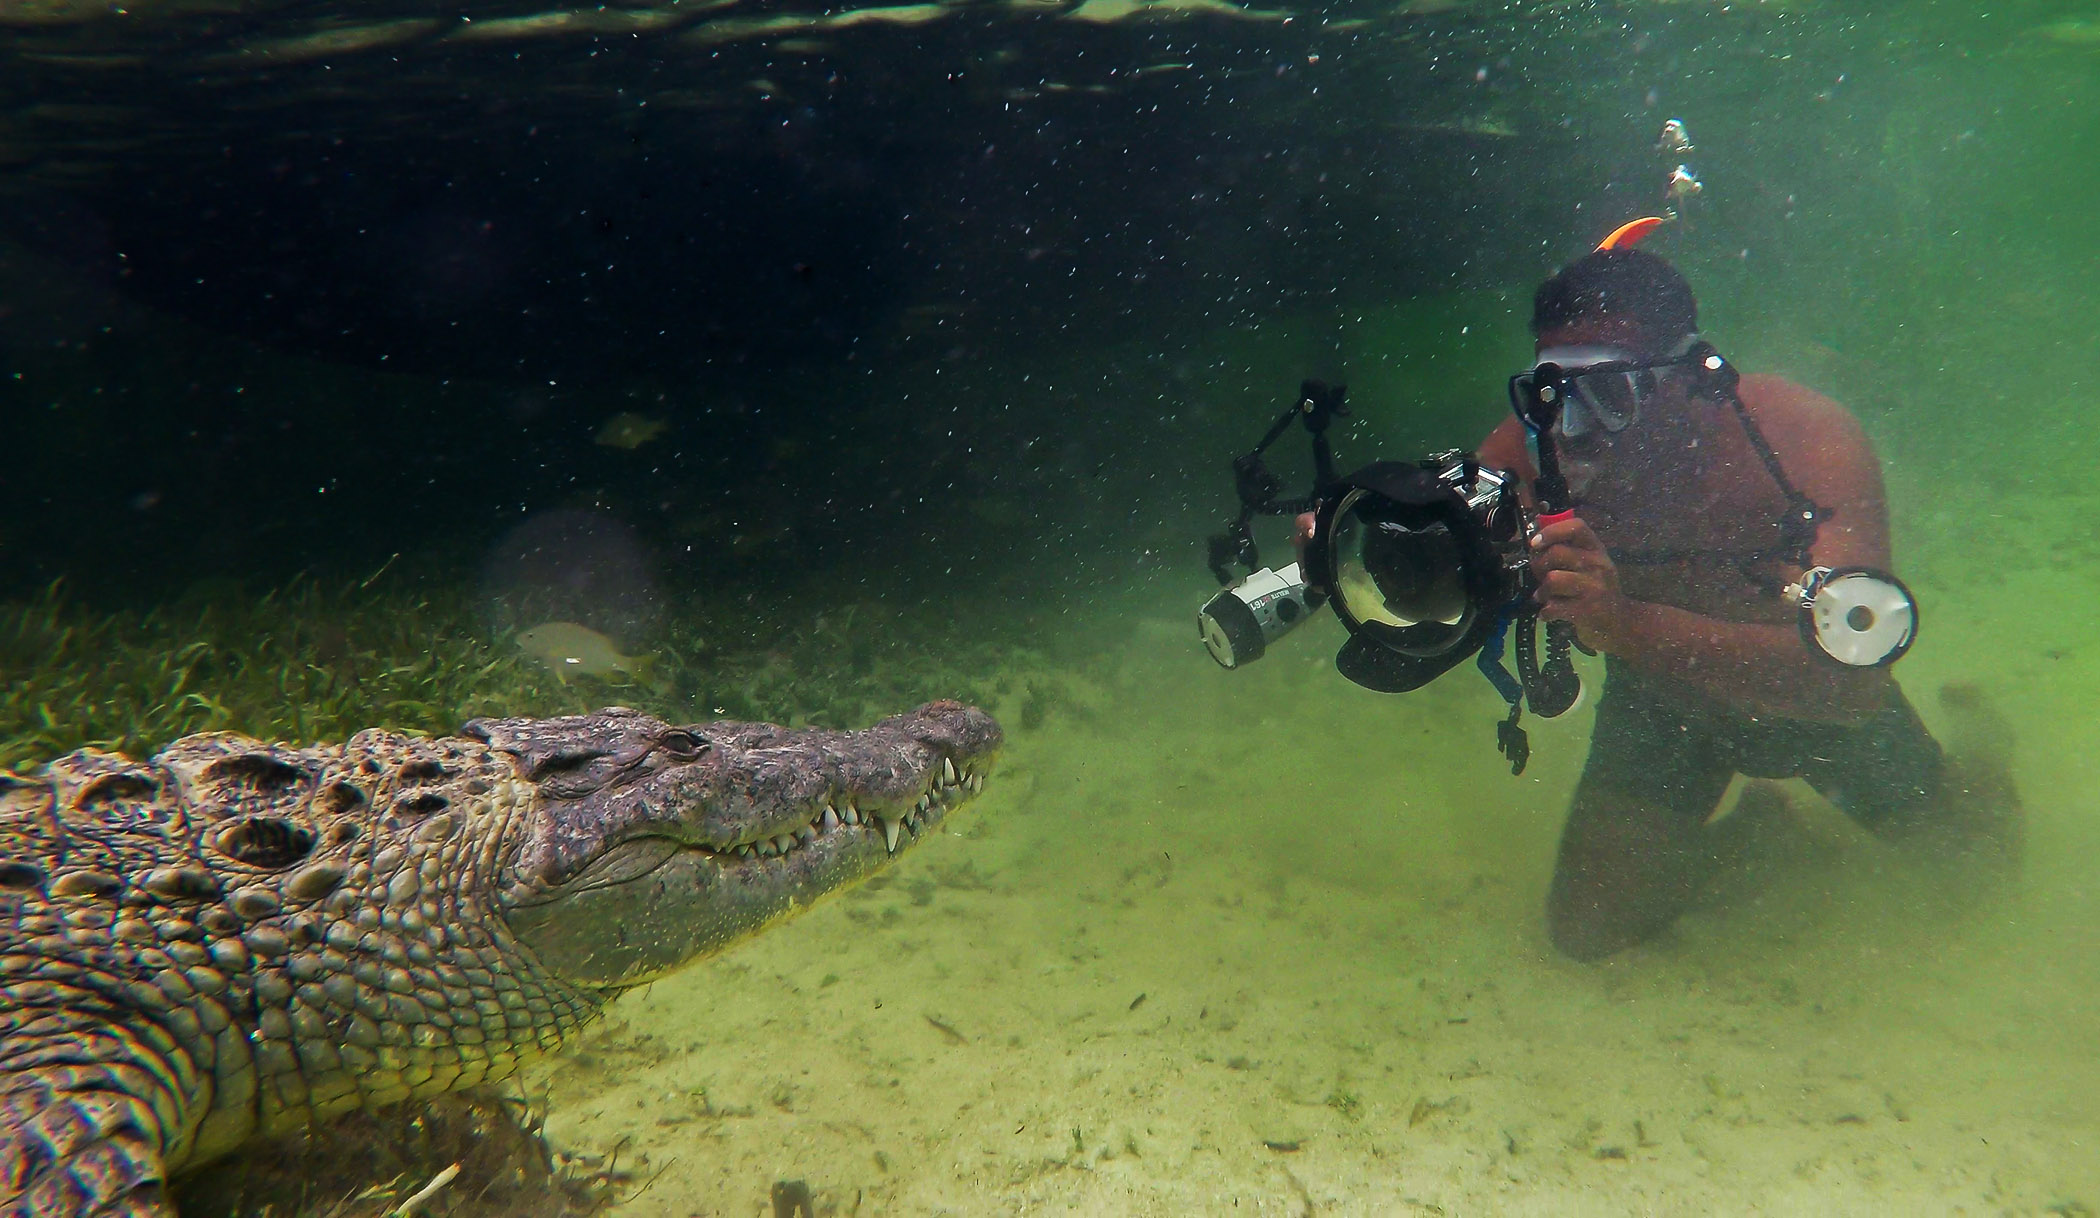 Shooting crocodiles at the Banco Chinchorro atoll reef off the coast of Mexico. A safety diver also stays in the water at all times, armed with a long pole, to push away the crocodiles in case of a problem.